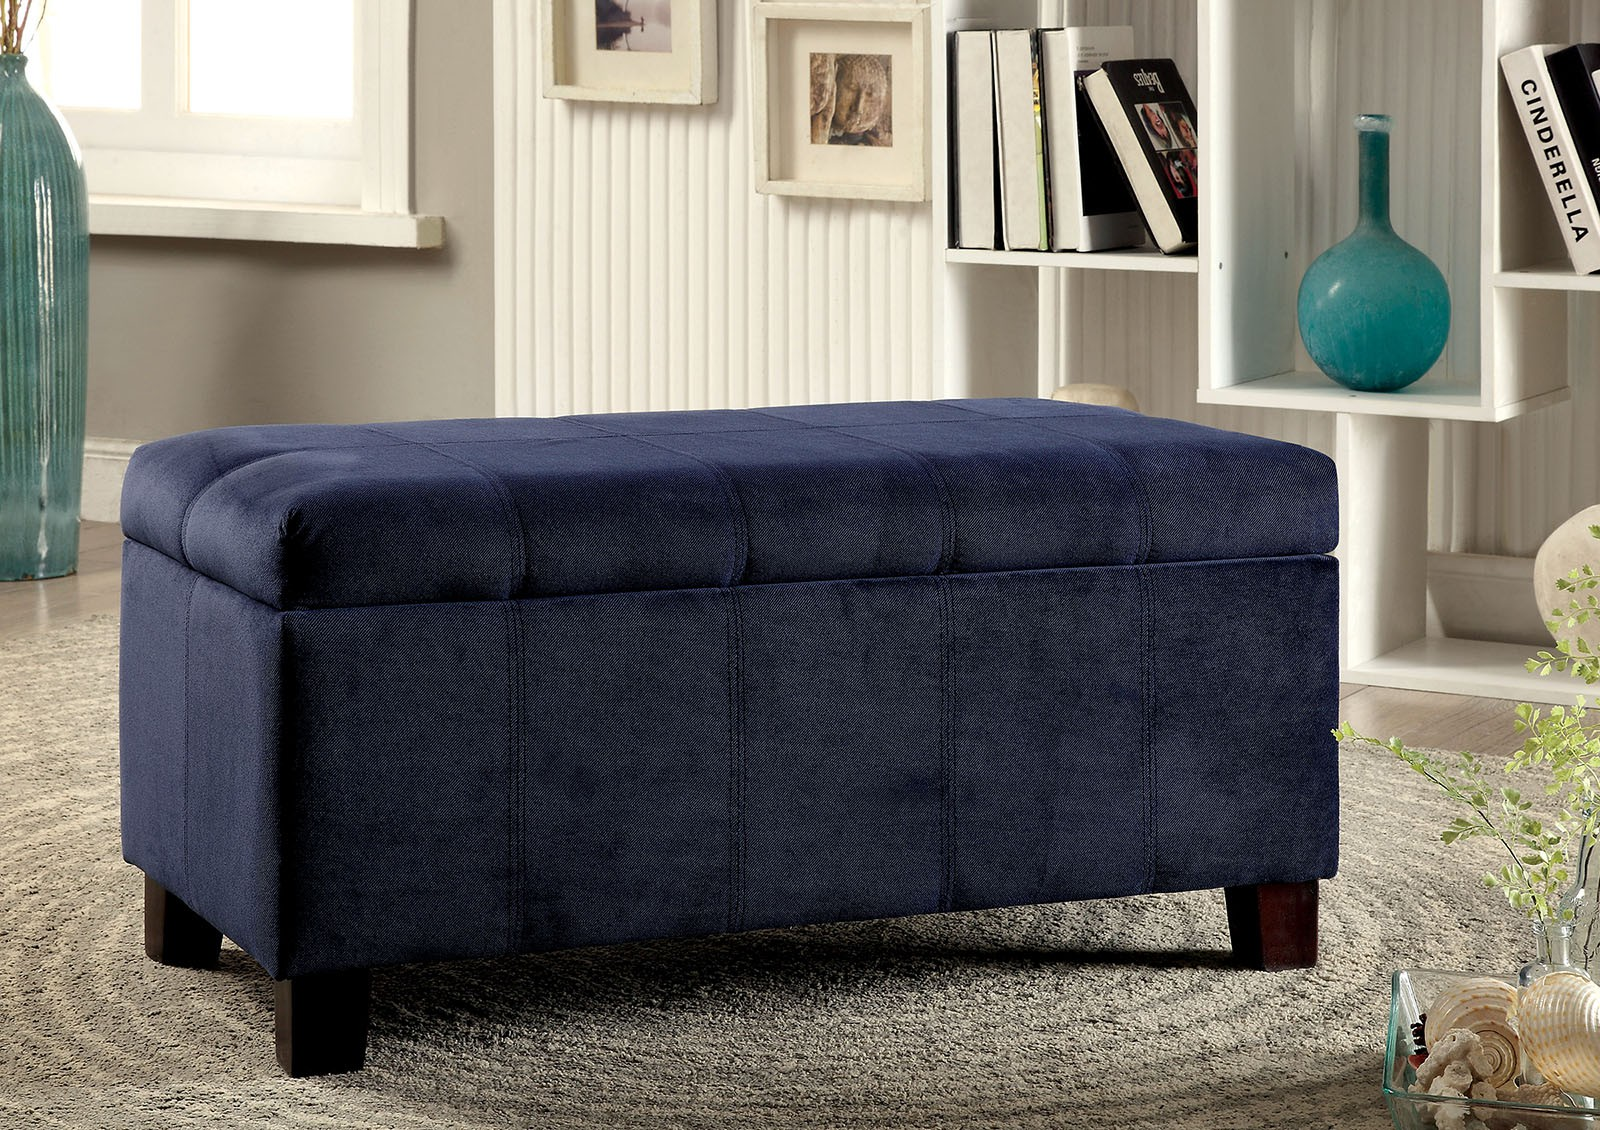 1PerfectChoice Remi Contemporary Padded Flannelette Flip-Top Storage Ottoman Bench Footstool Navy by 1PerfectChoice